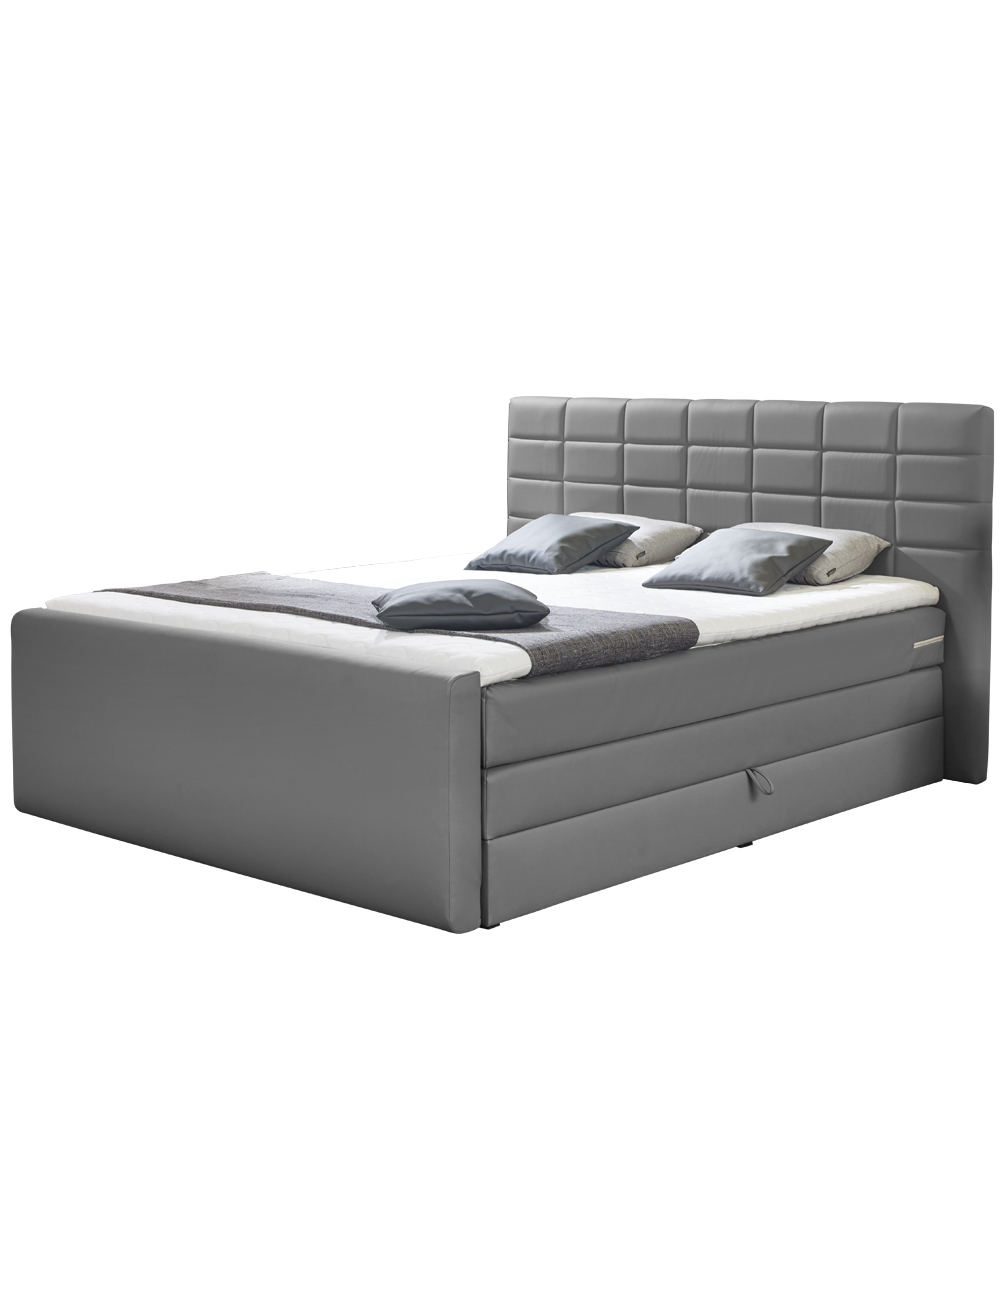 Bett 120x200 Home24 Boxspring Matratzen Affordable With Boxspring Matratzen Perfect